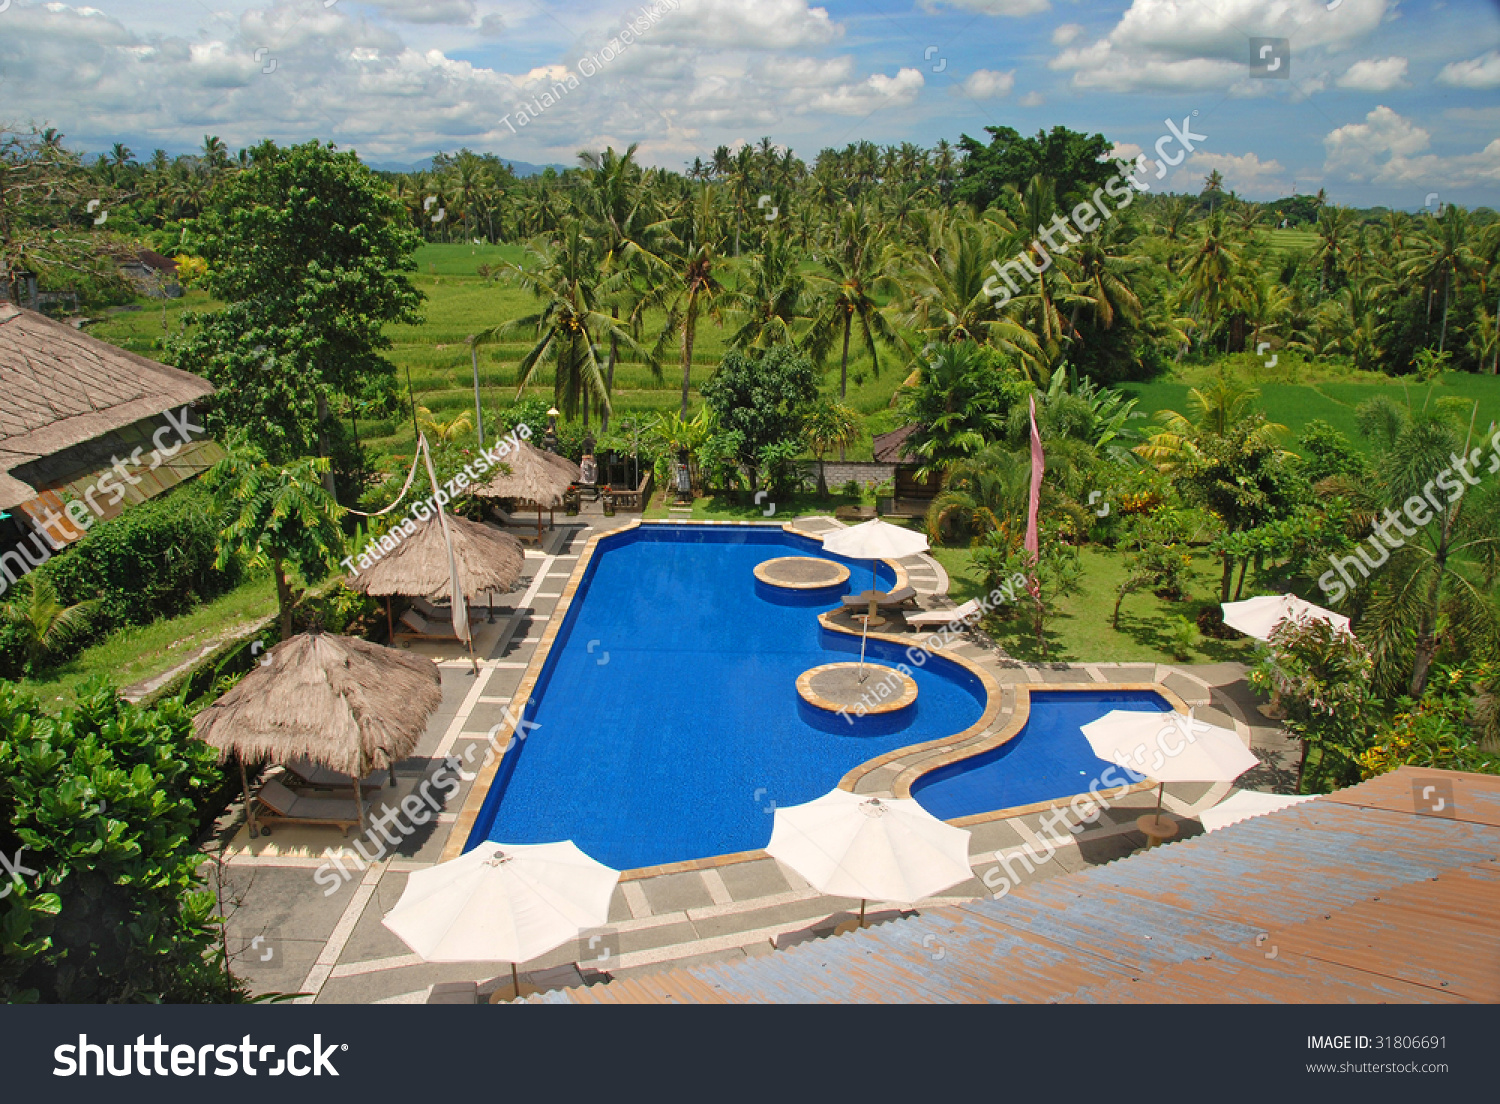 Swimming Pool Near Hotel Bali Indonesia Stock Photo 31806691 Shutterstock